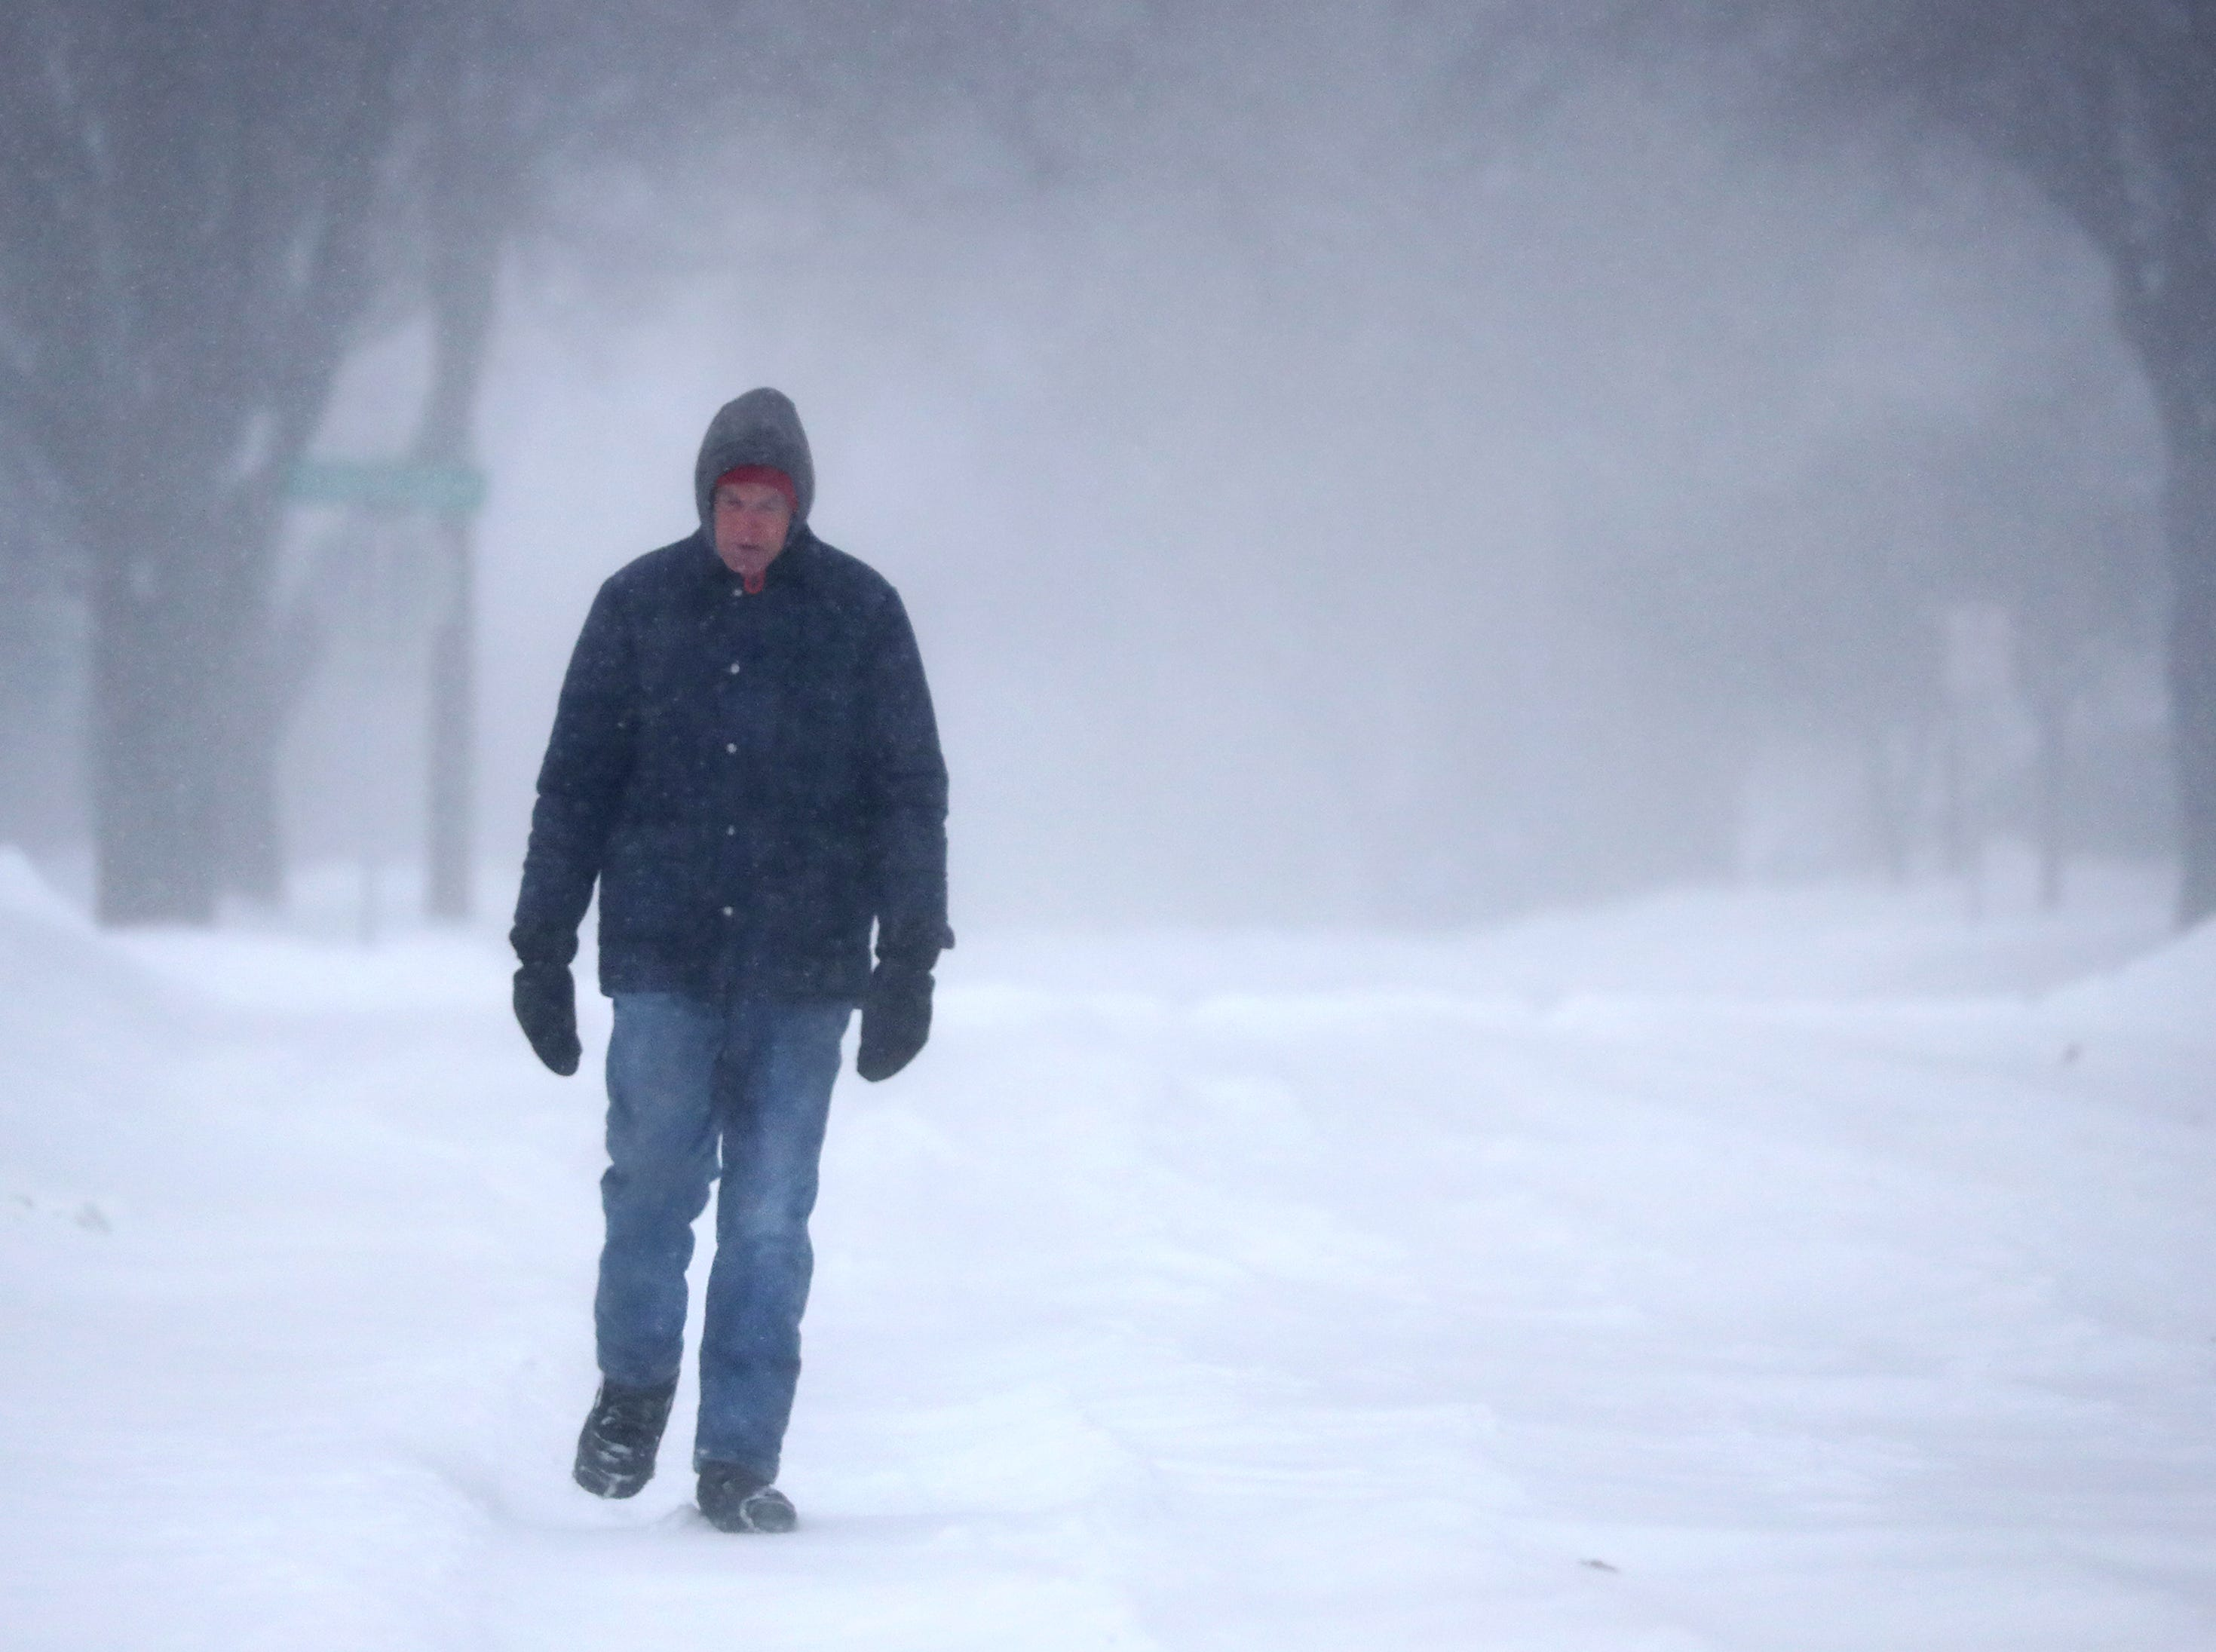 Jim School takes a walk as a winter storm moves through Wisconsin on Monday, January 28, 2019, in Kaukauna, Wis.